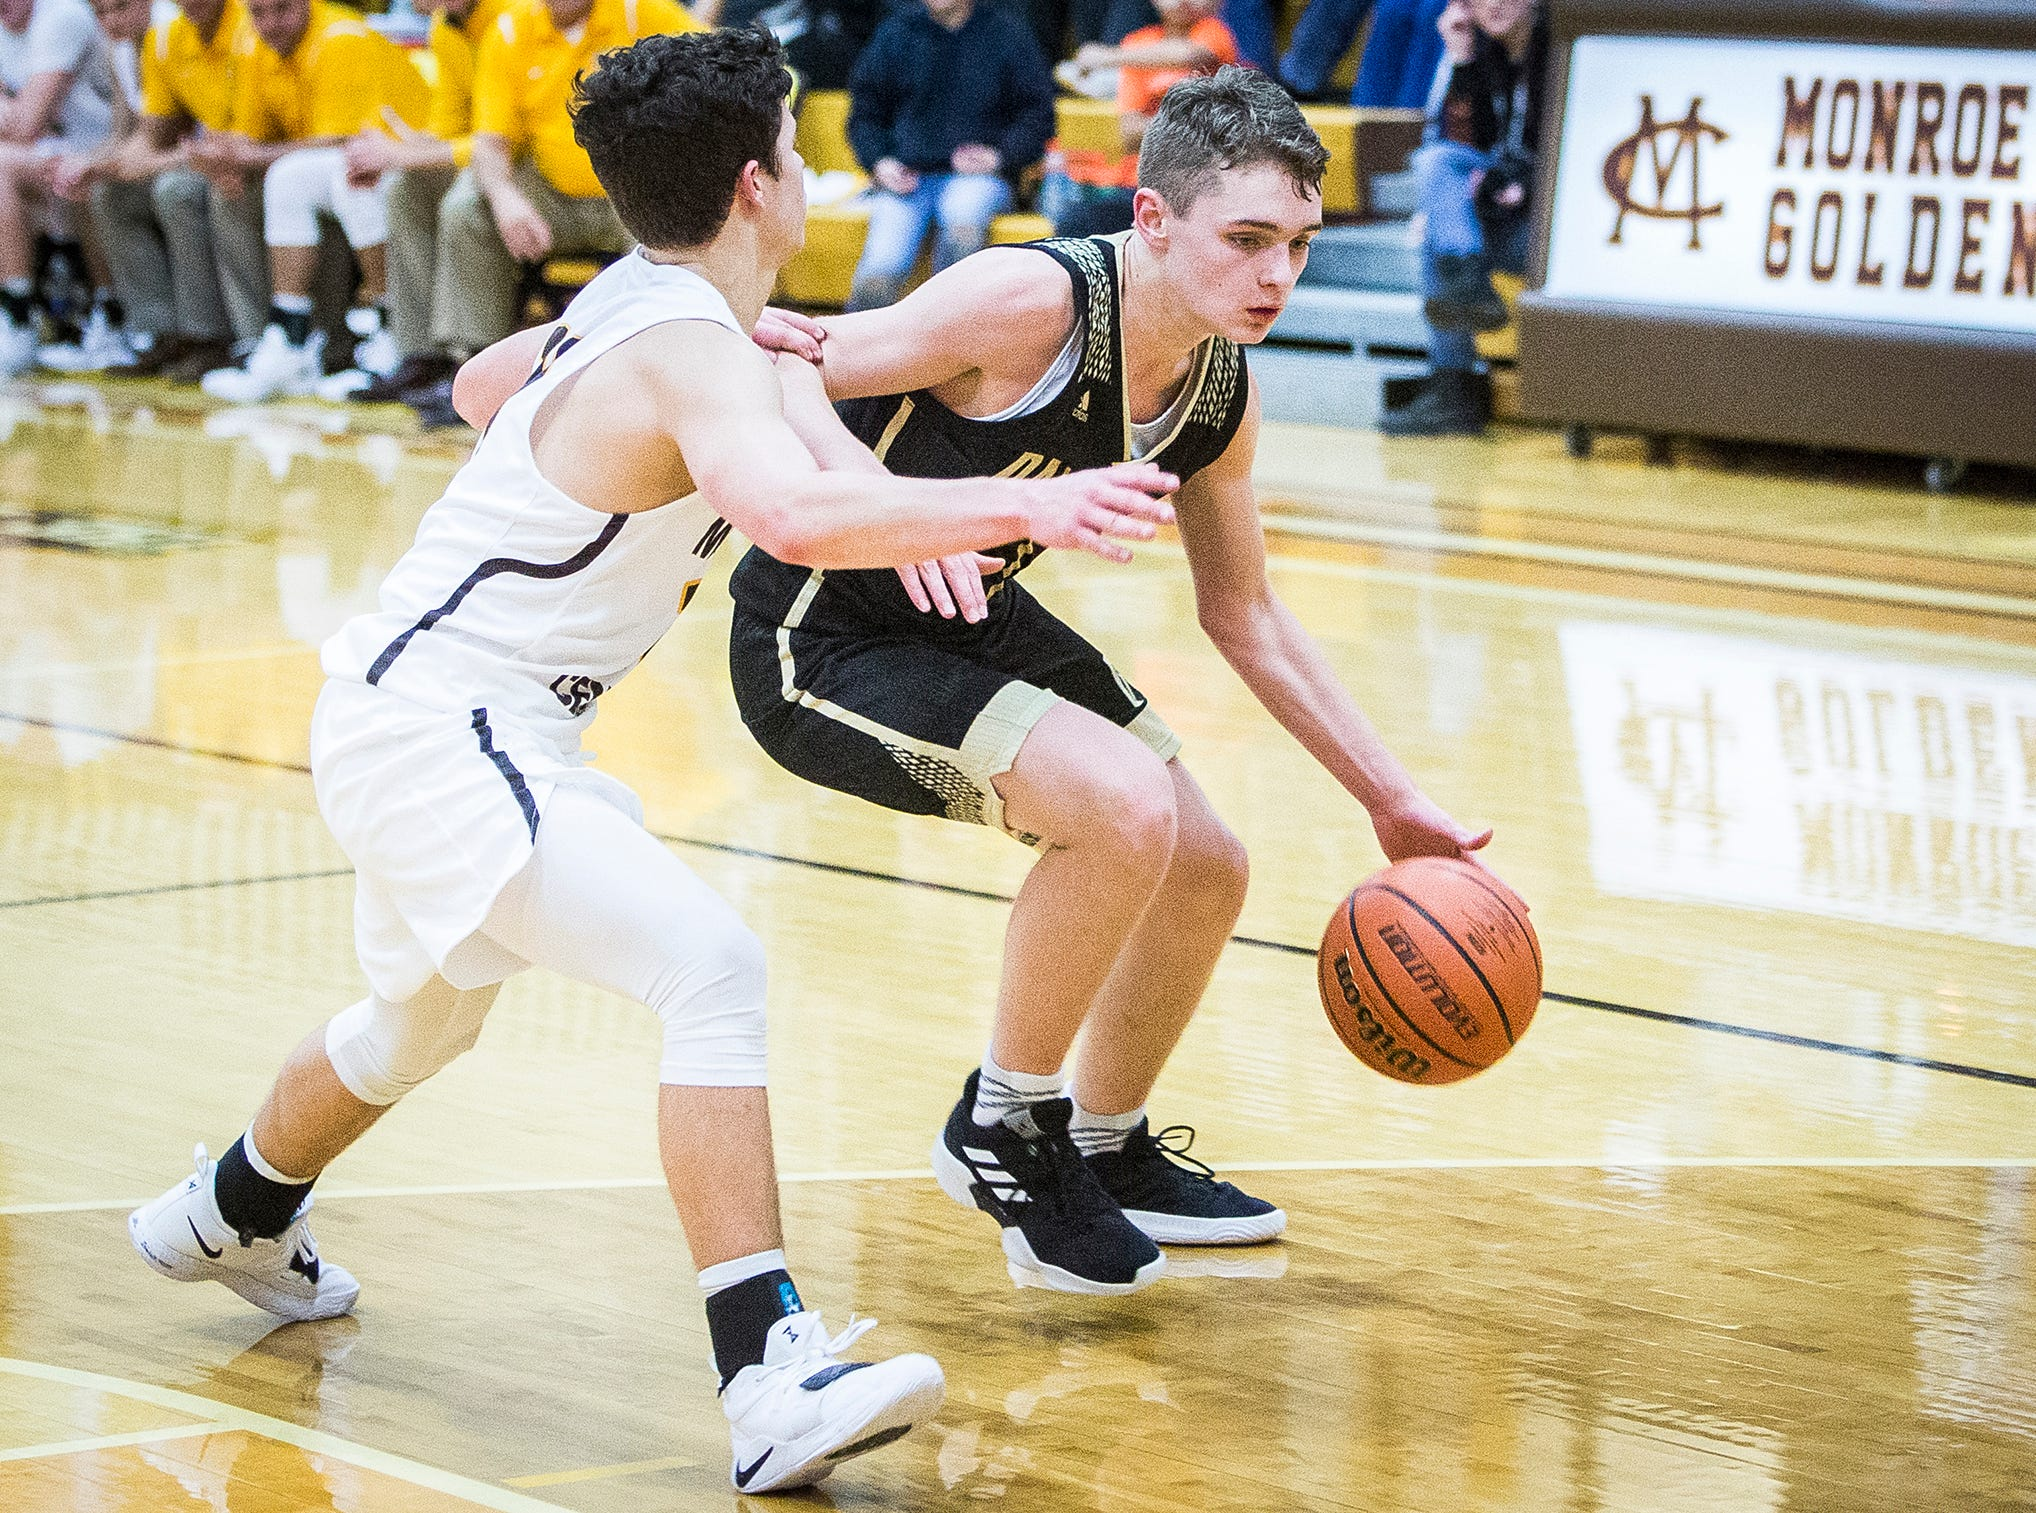 Daleville faces off against Monroe Central during their game at Monroe Central High School Friday, Nov. 30, 2018.